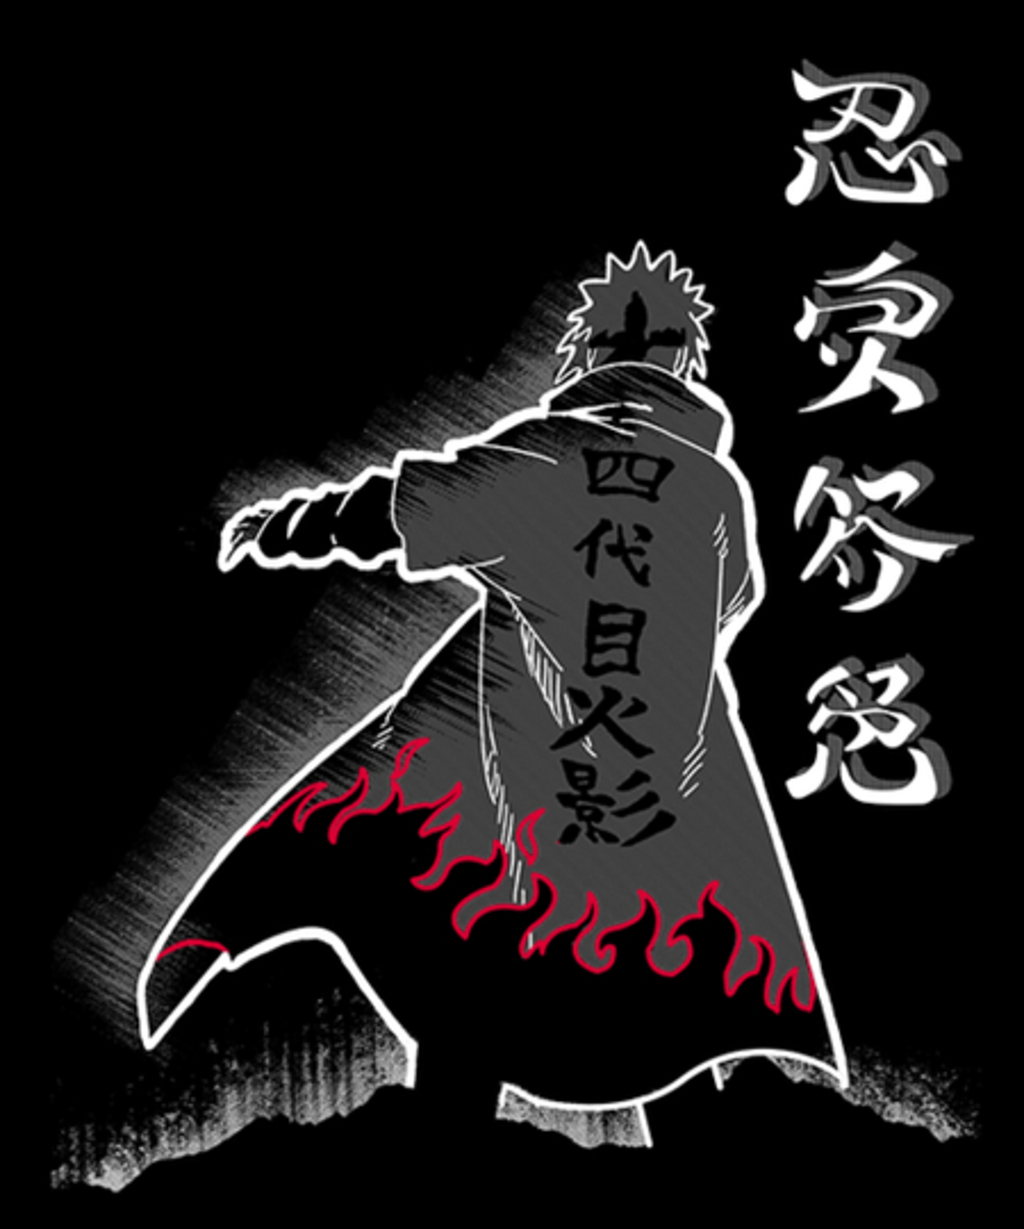 Qwertee: Fourth Hokage Enters